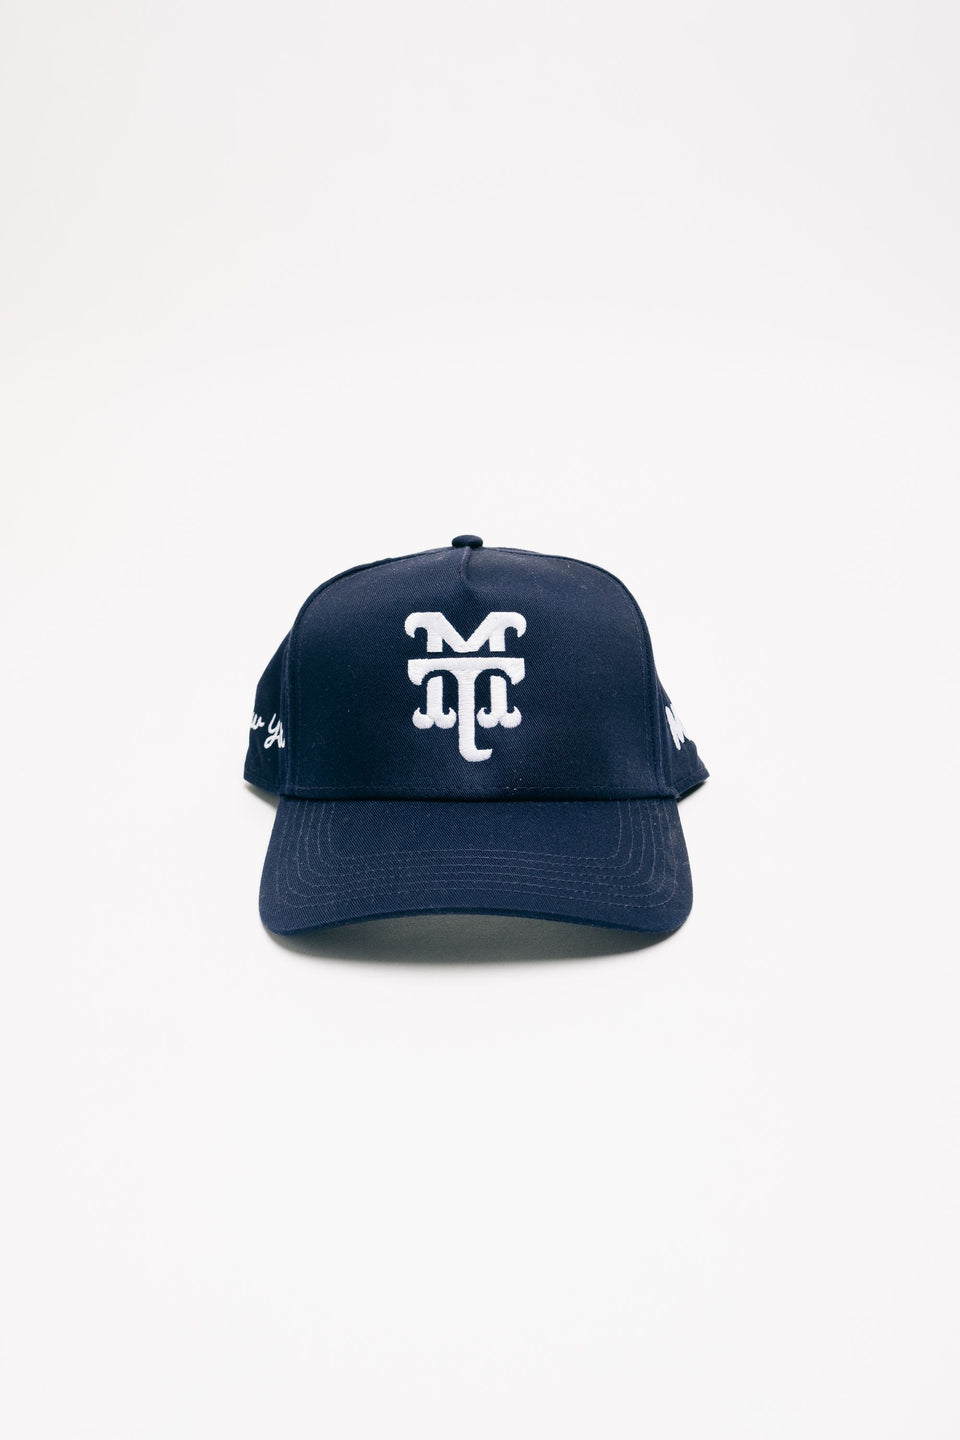 Home Team - Raetro Golfer Snap Back - Navy